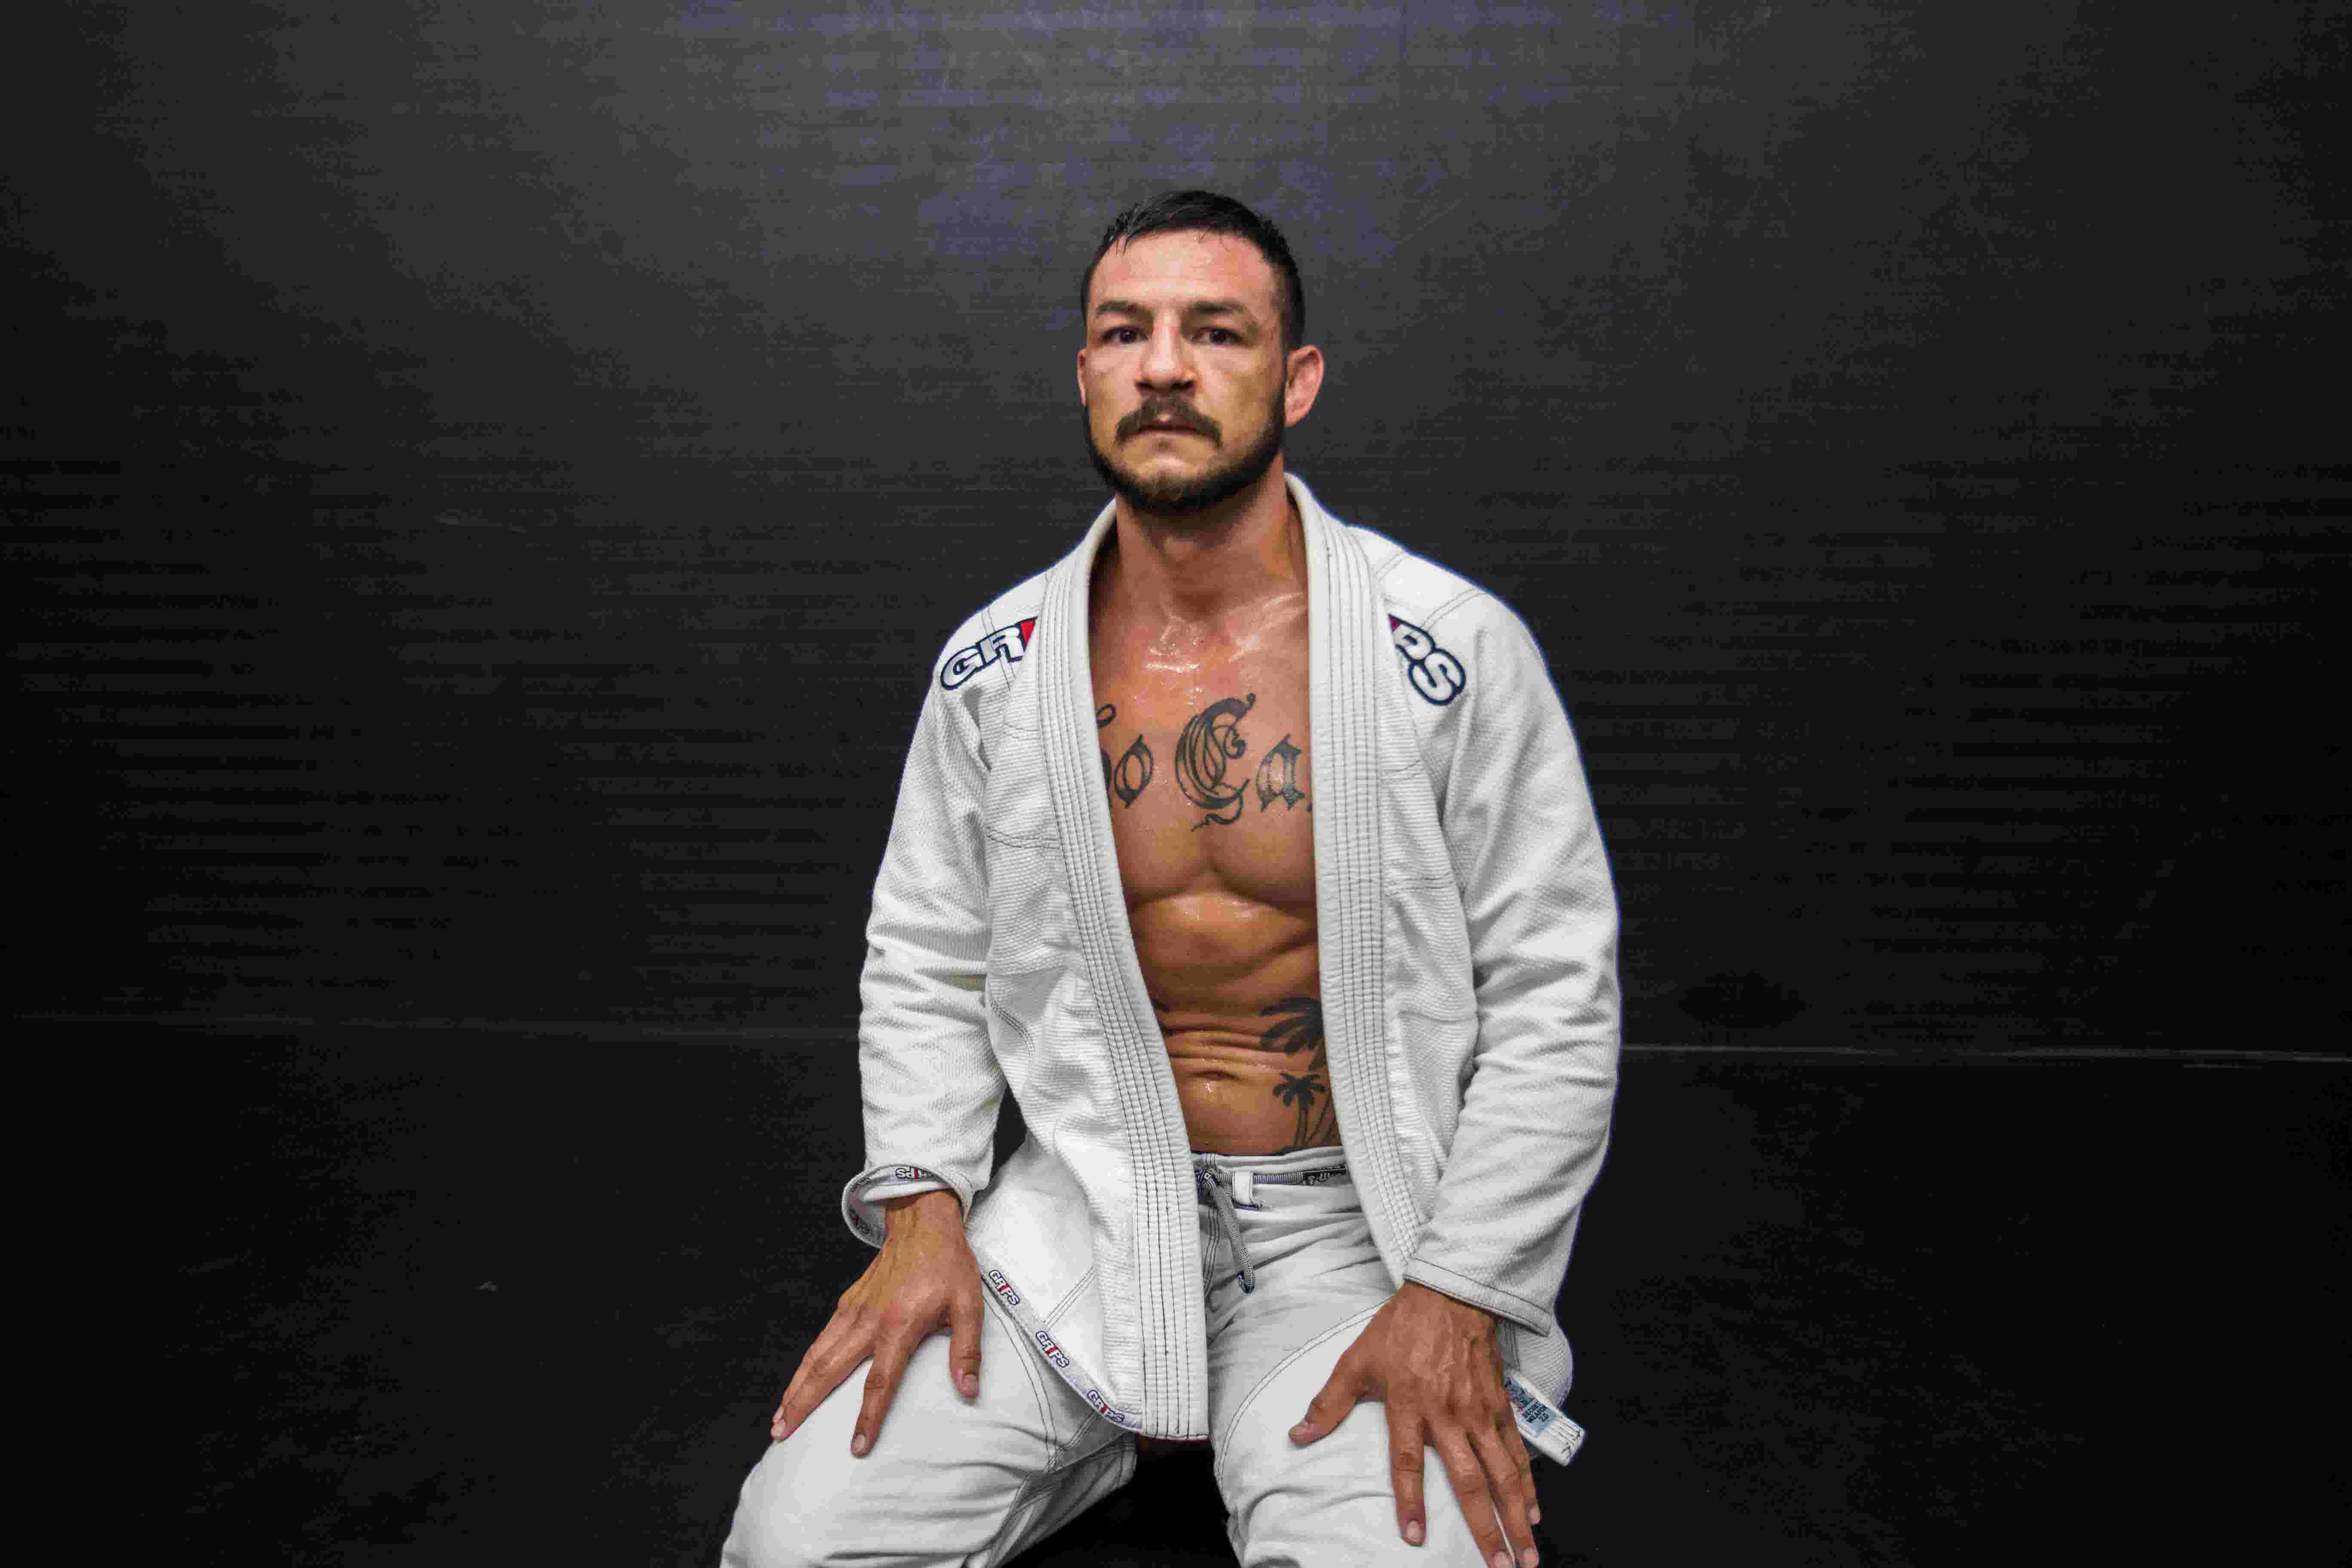 Cathedral City native Cub Swanson returns to UFC win column with victory over Kron Gracie